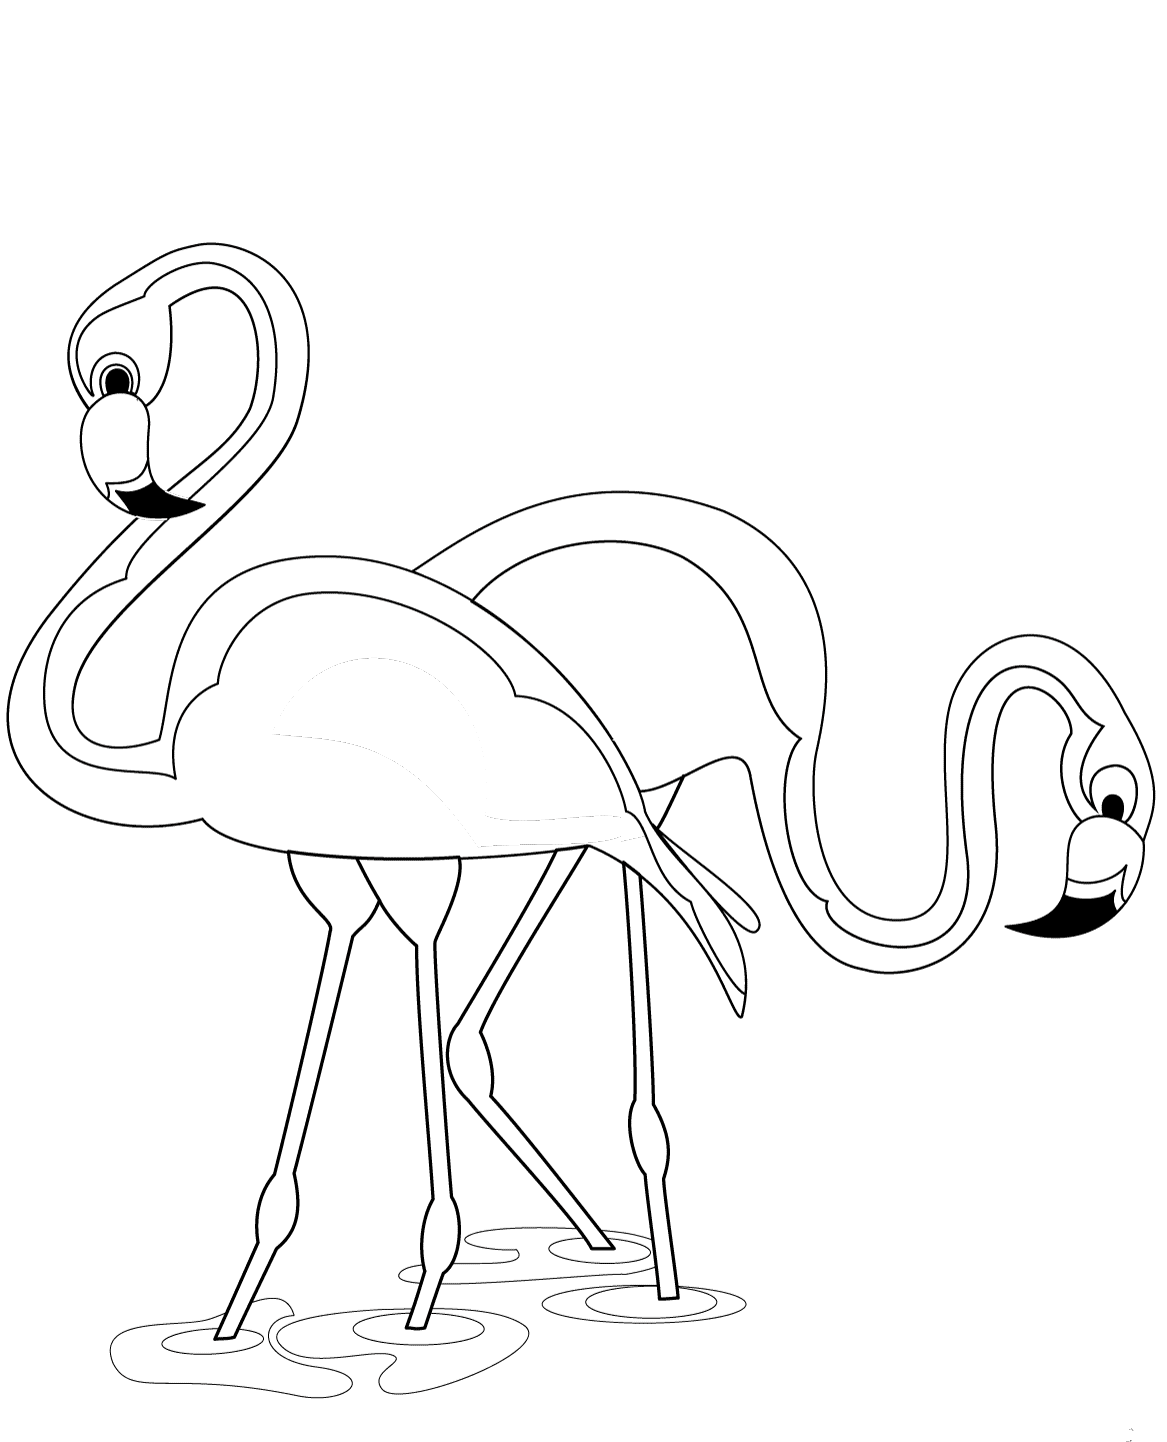 Flamingos coloring page